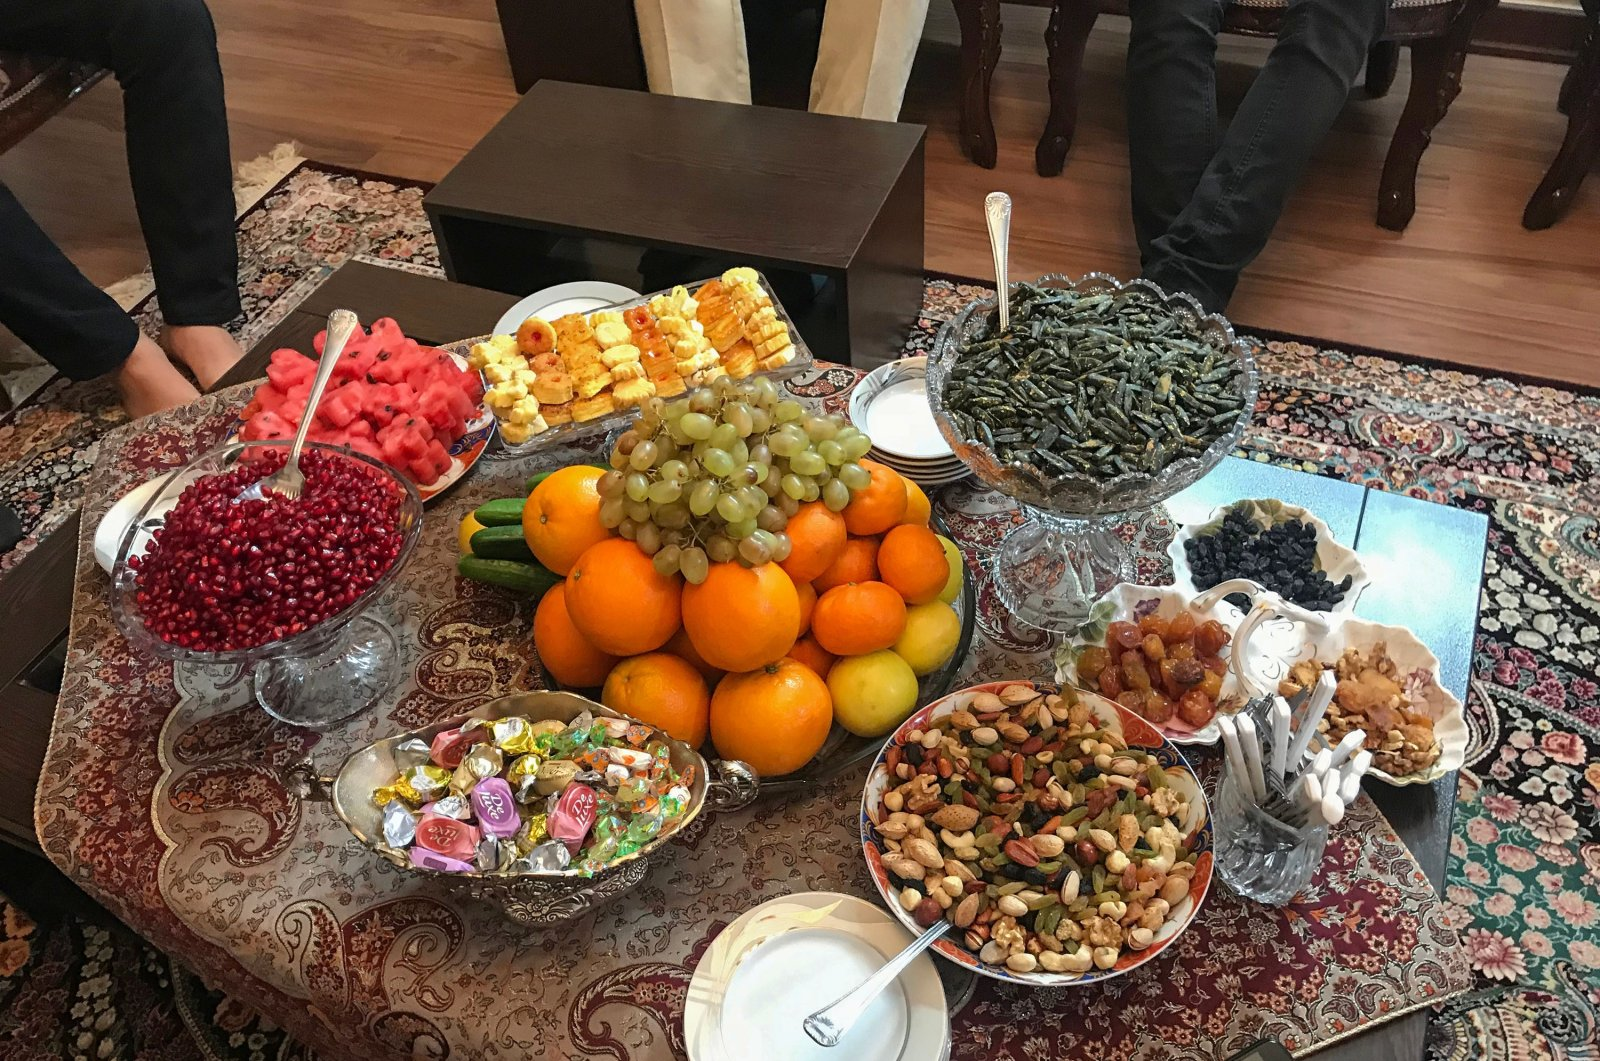 Freshly-dried fruits and nuts on offer on tables prepared for the Shab-e Yalda celebration